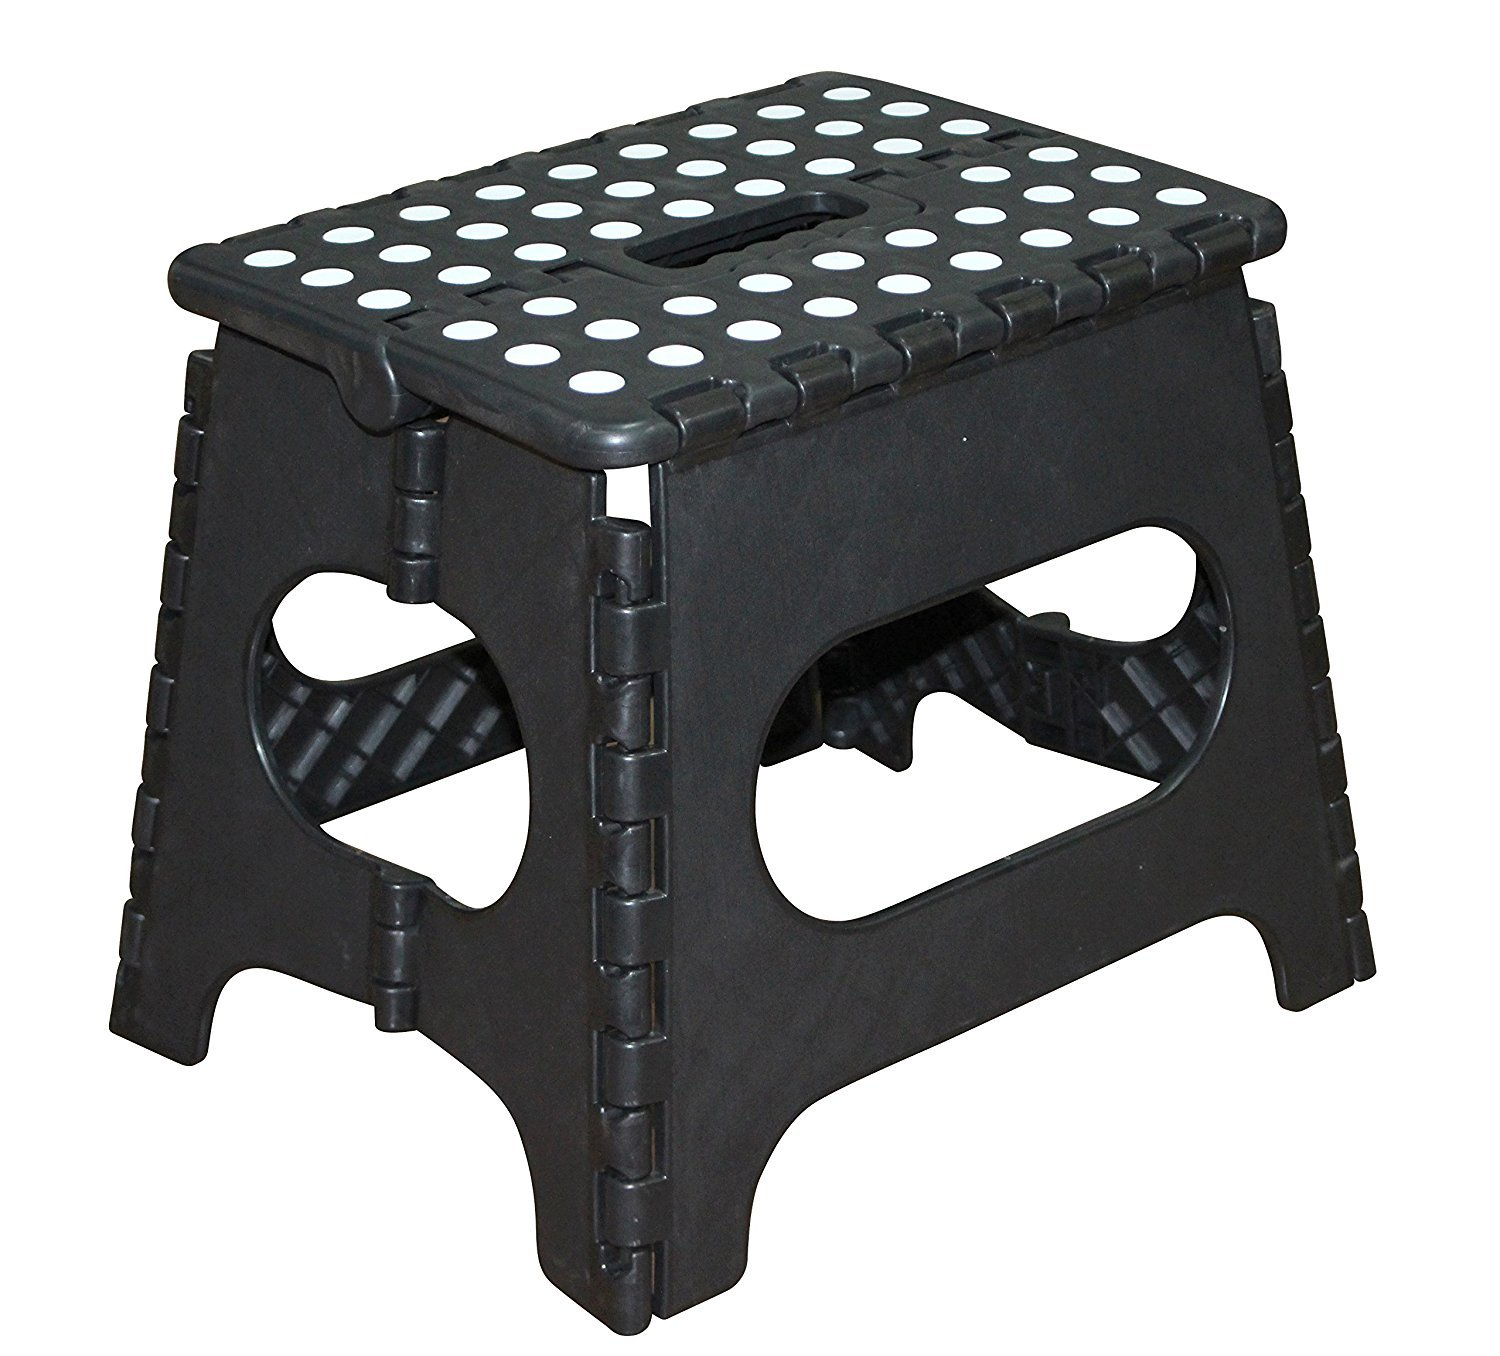 Jeronic 11 Inch Plastic Folding Step Stool Black Amazon